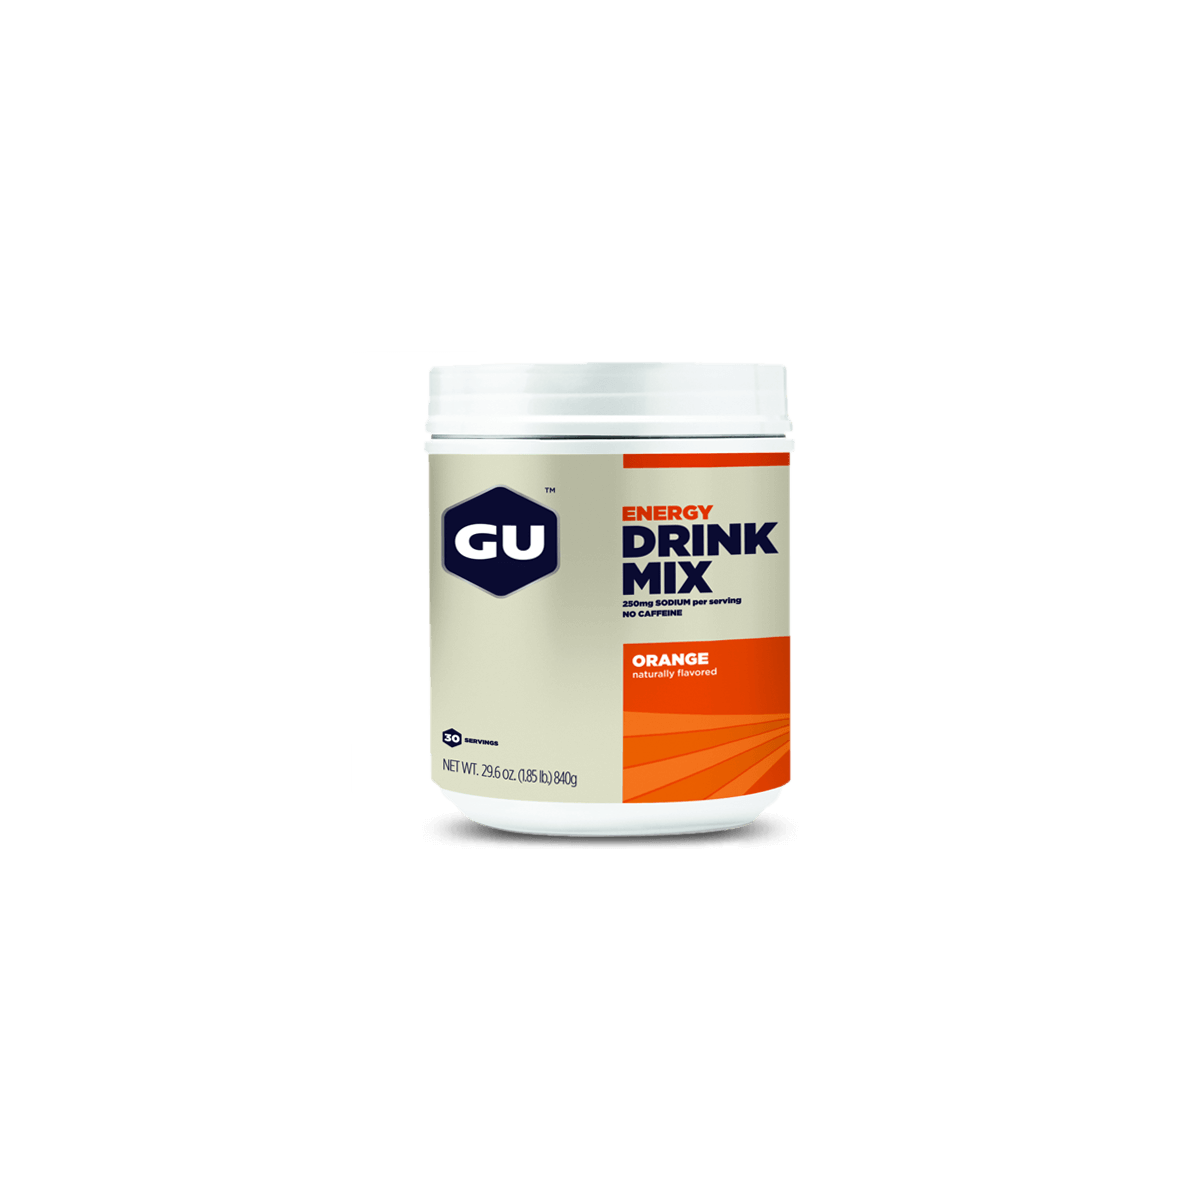 ENERGY DRINK MIX (840G)